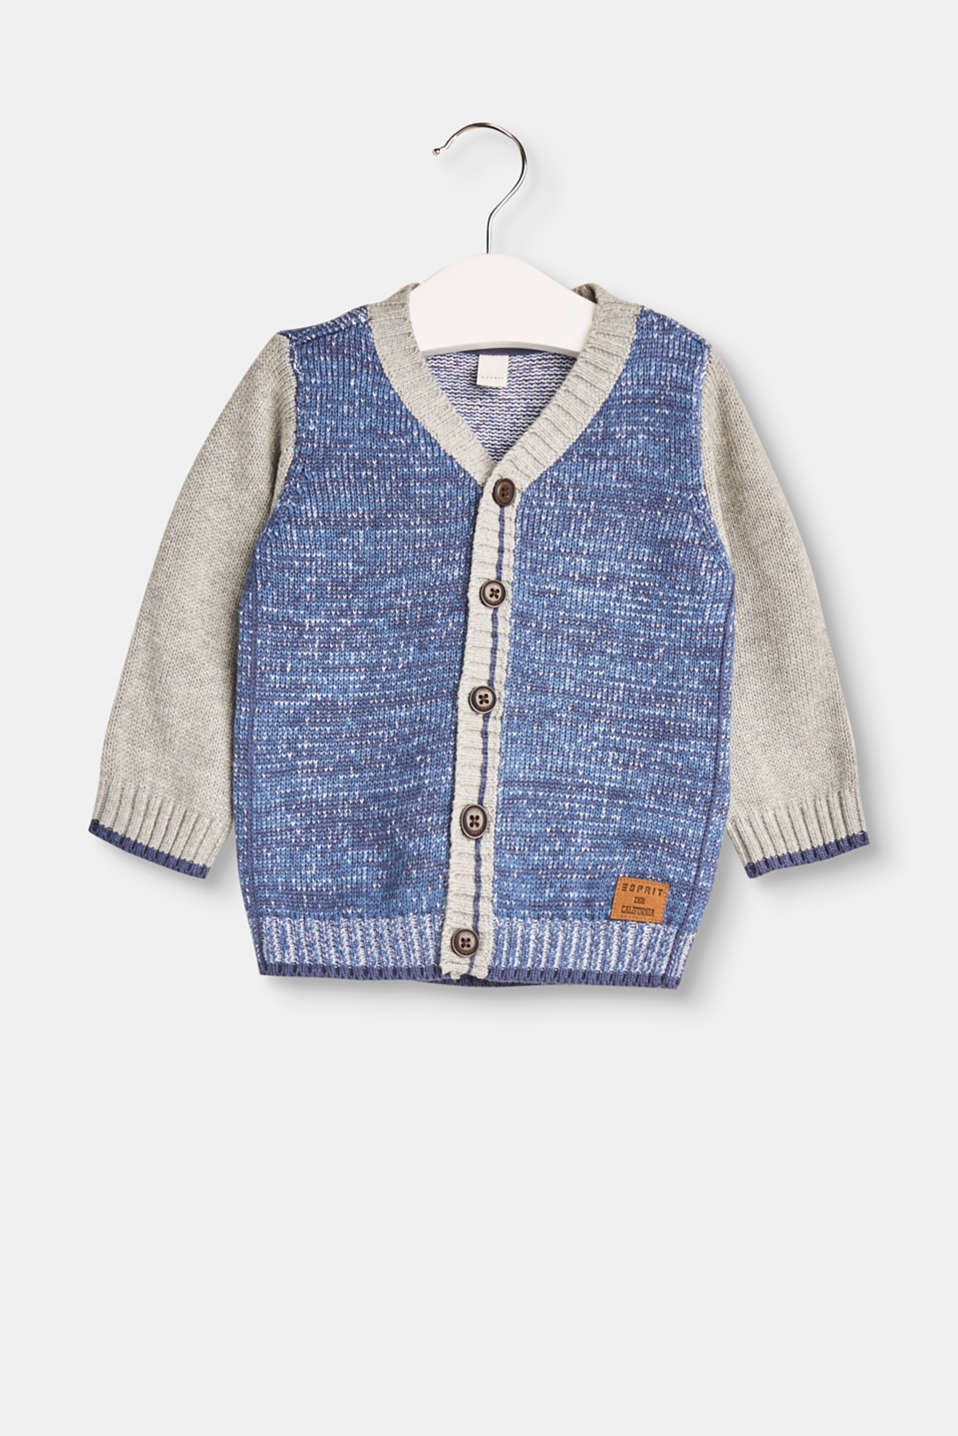 Esprit - Colour block cardigan in 100% cotton